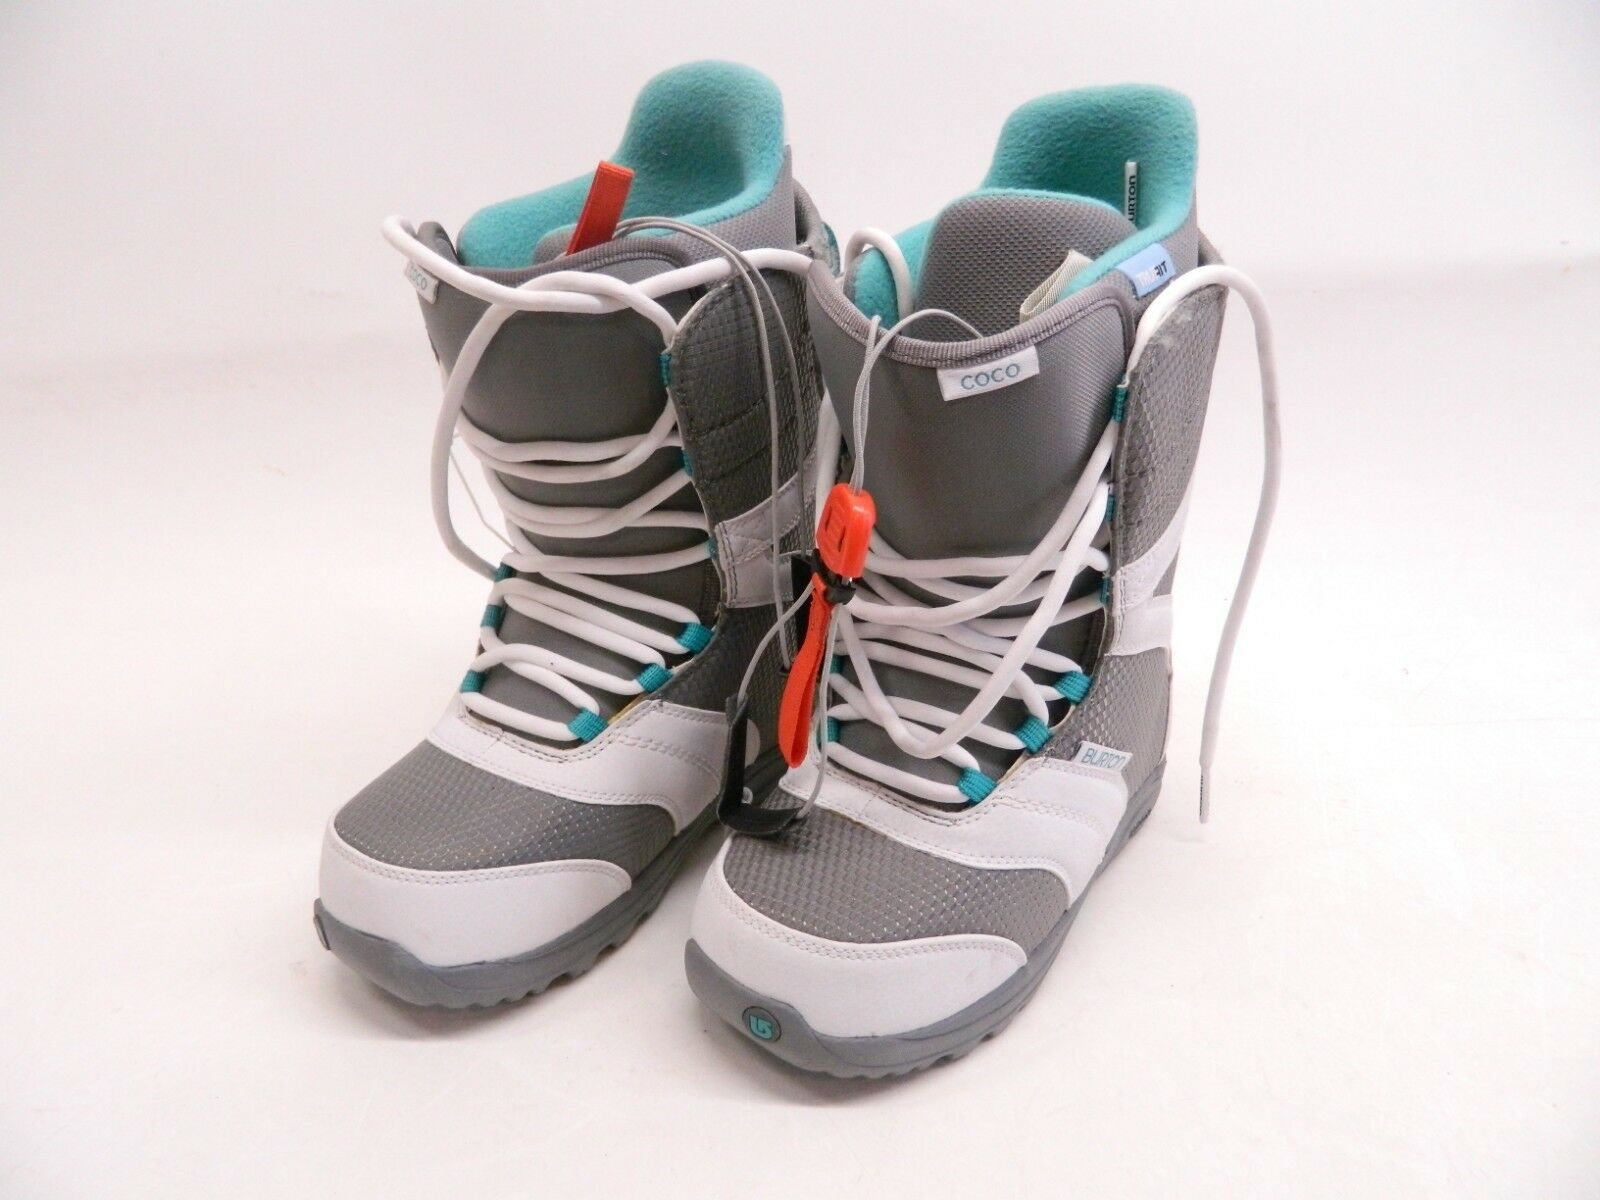 Mismatch Replacement Burton Coco Snowboard Boots Women's Size 6 Left & 7 Right